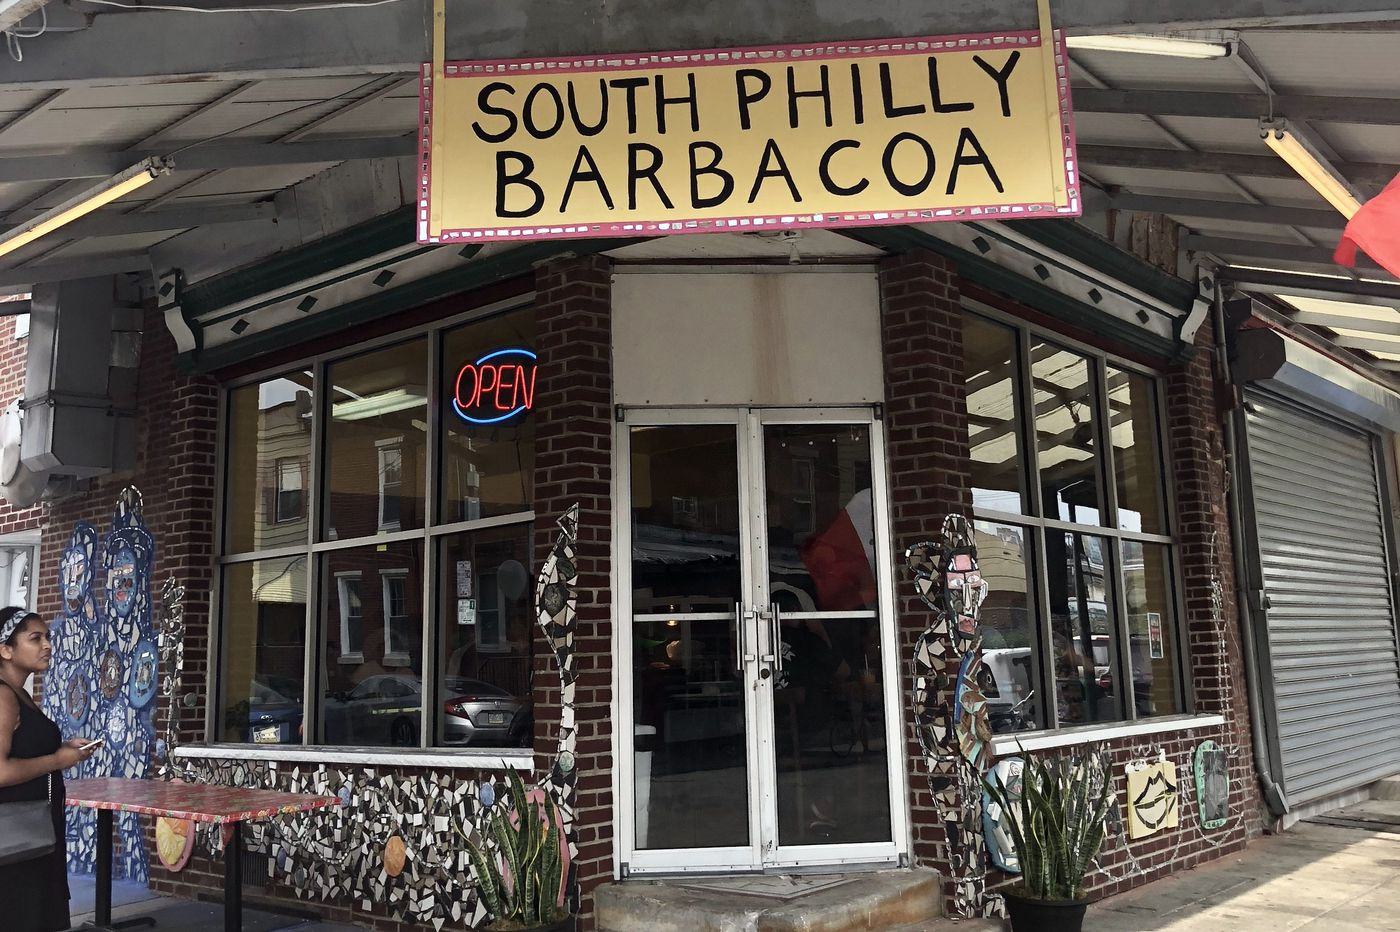 South Philly Barbacoa is back — not that it ever really left